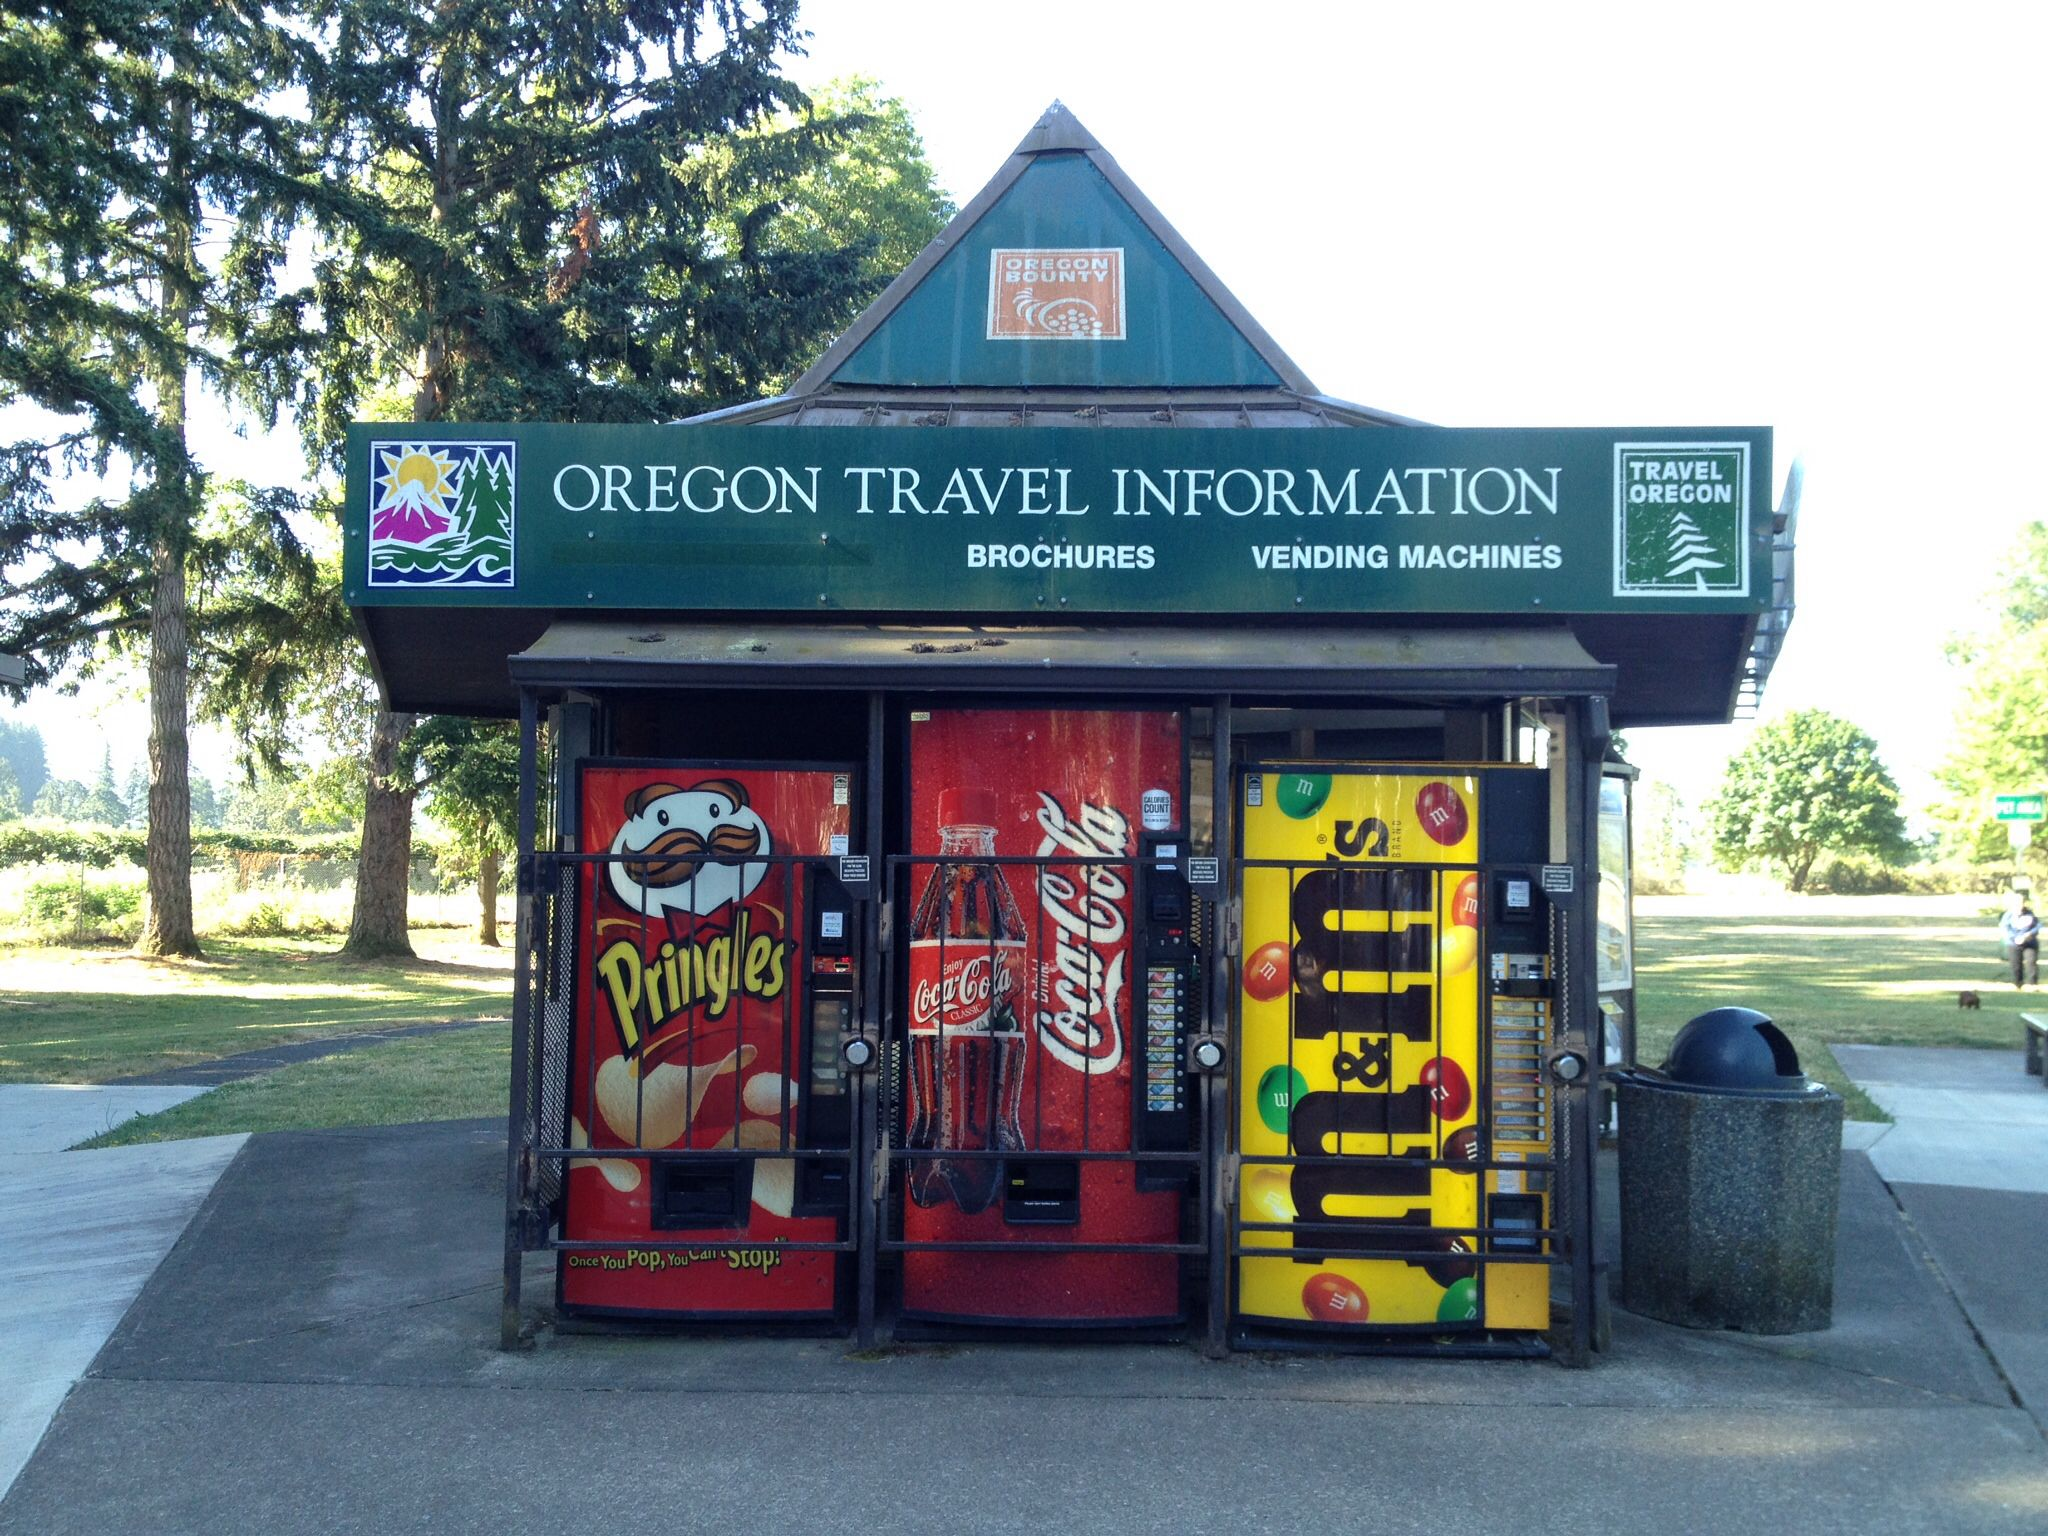 Rest Area off of I5 in Oregon, WA.   Never seen a Pringles or an M&M's vending machines before.